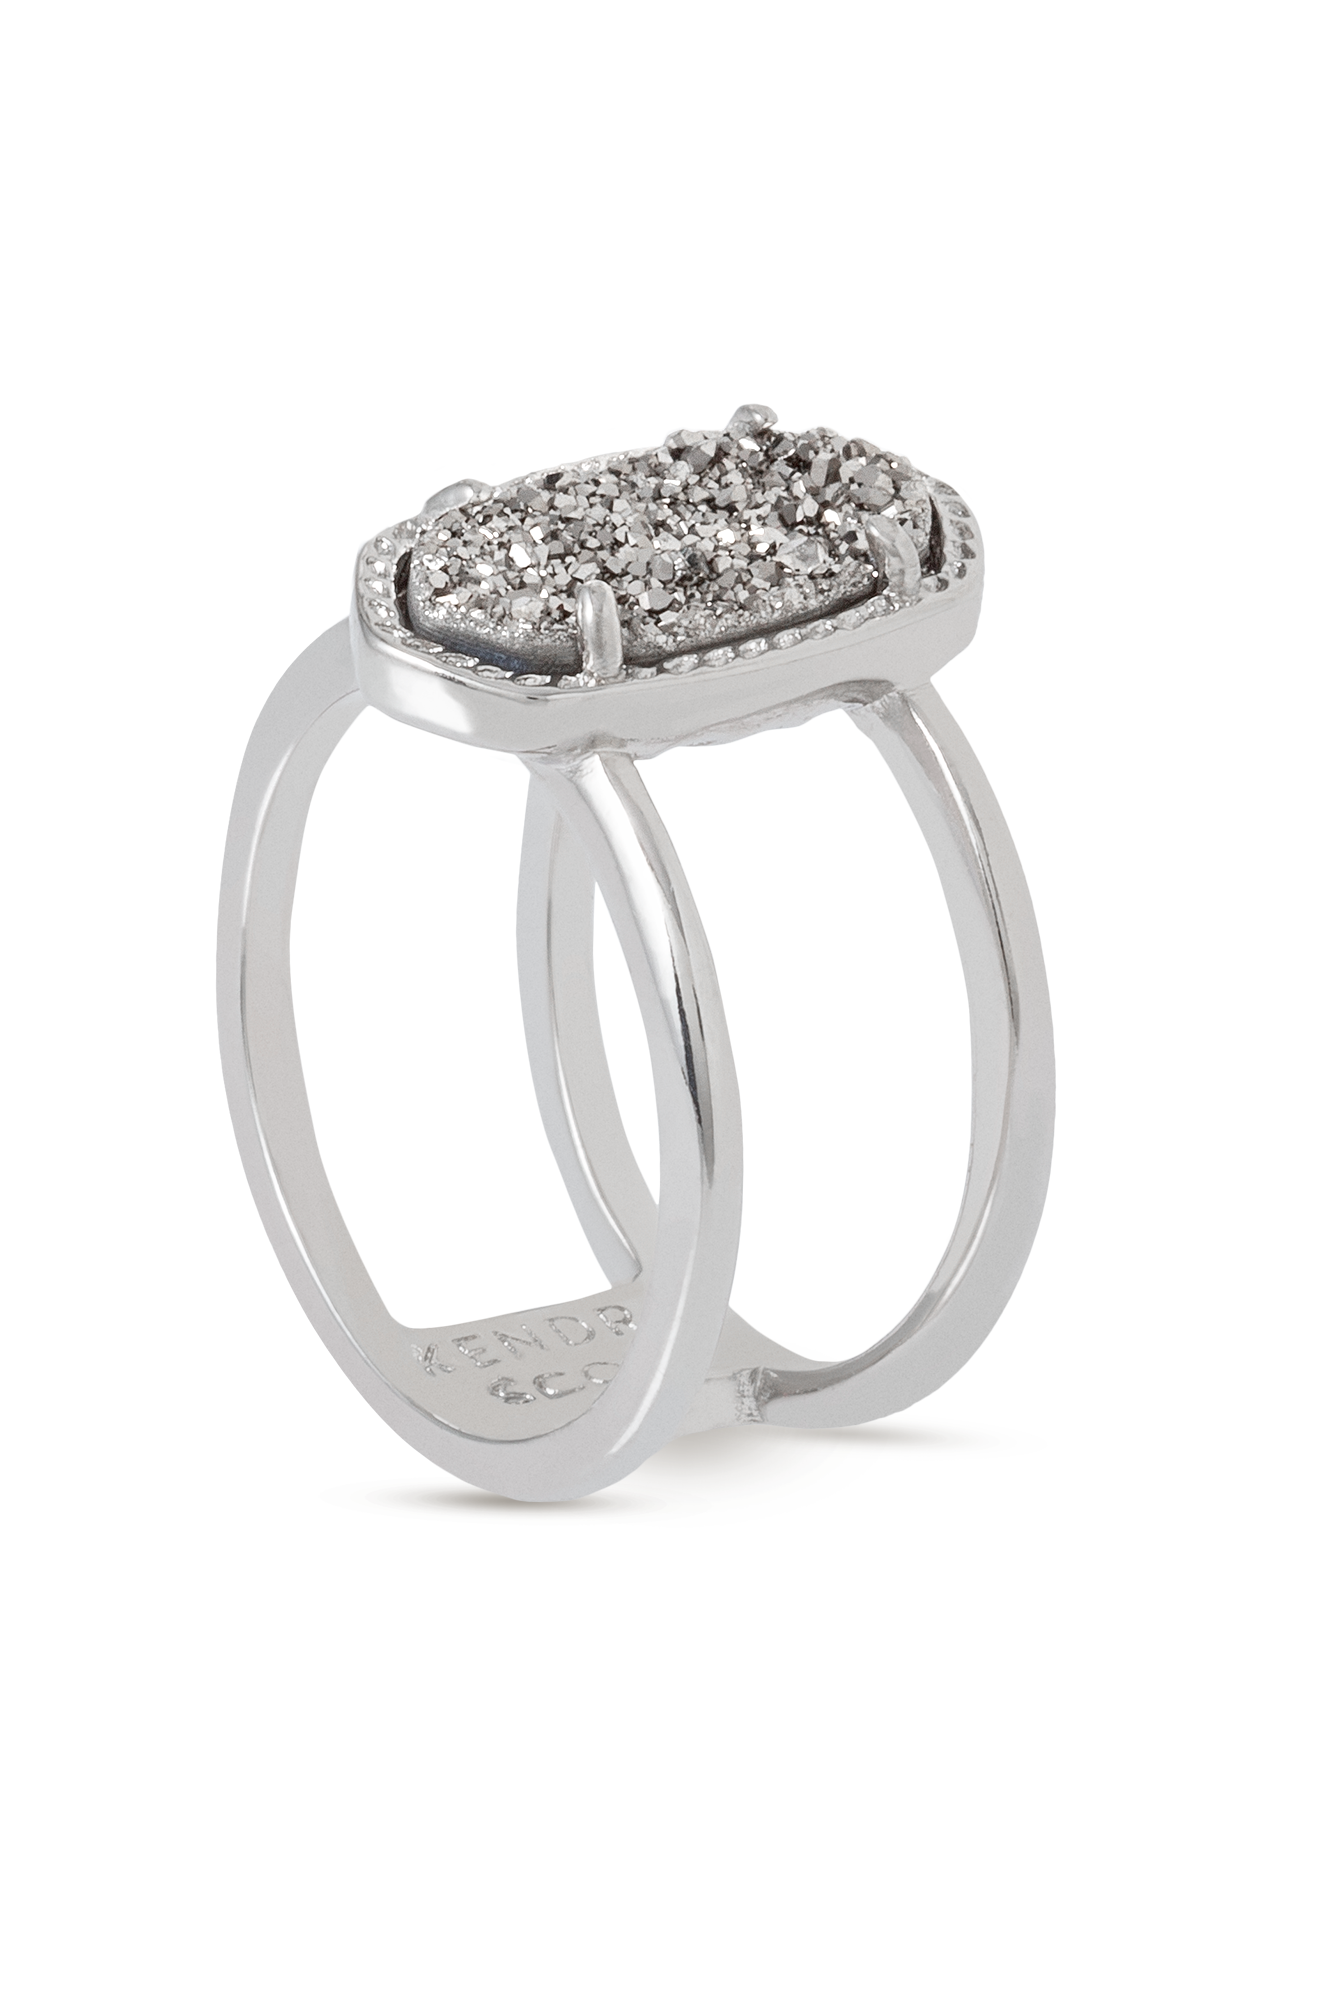 Kendra Scott Elyse Ring In Silver Platinum Drusy